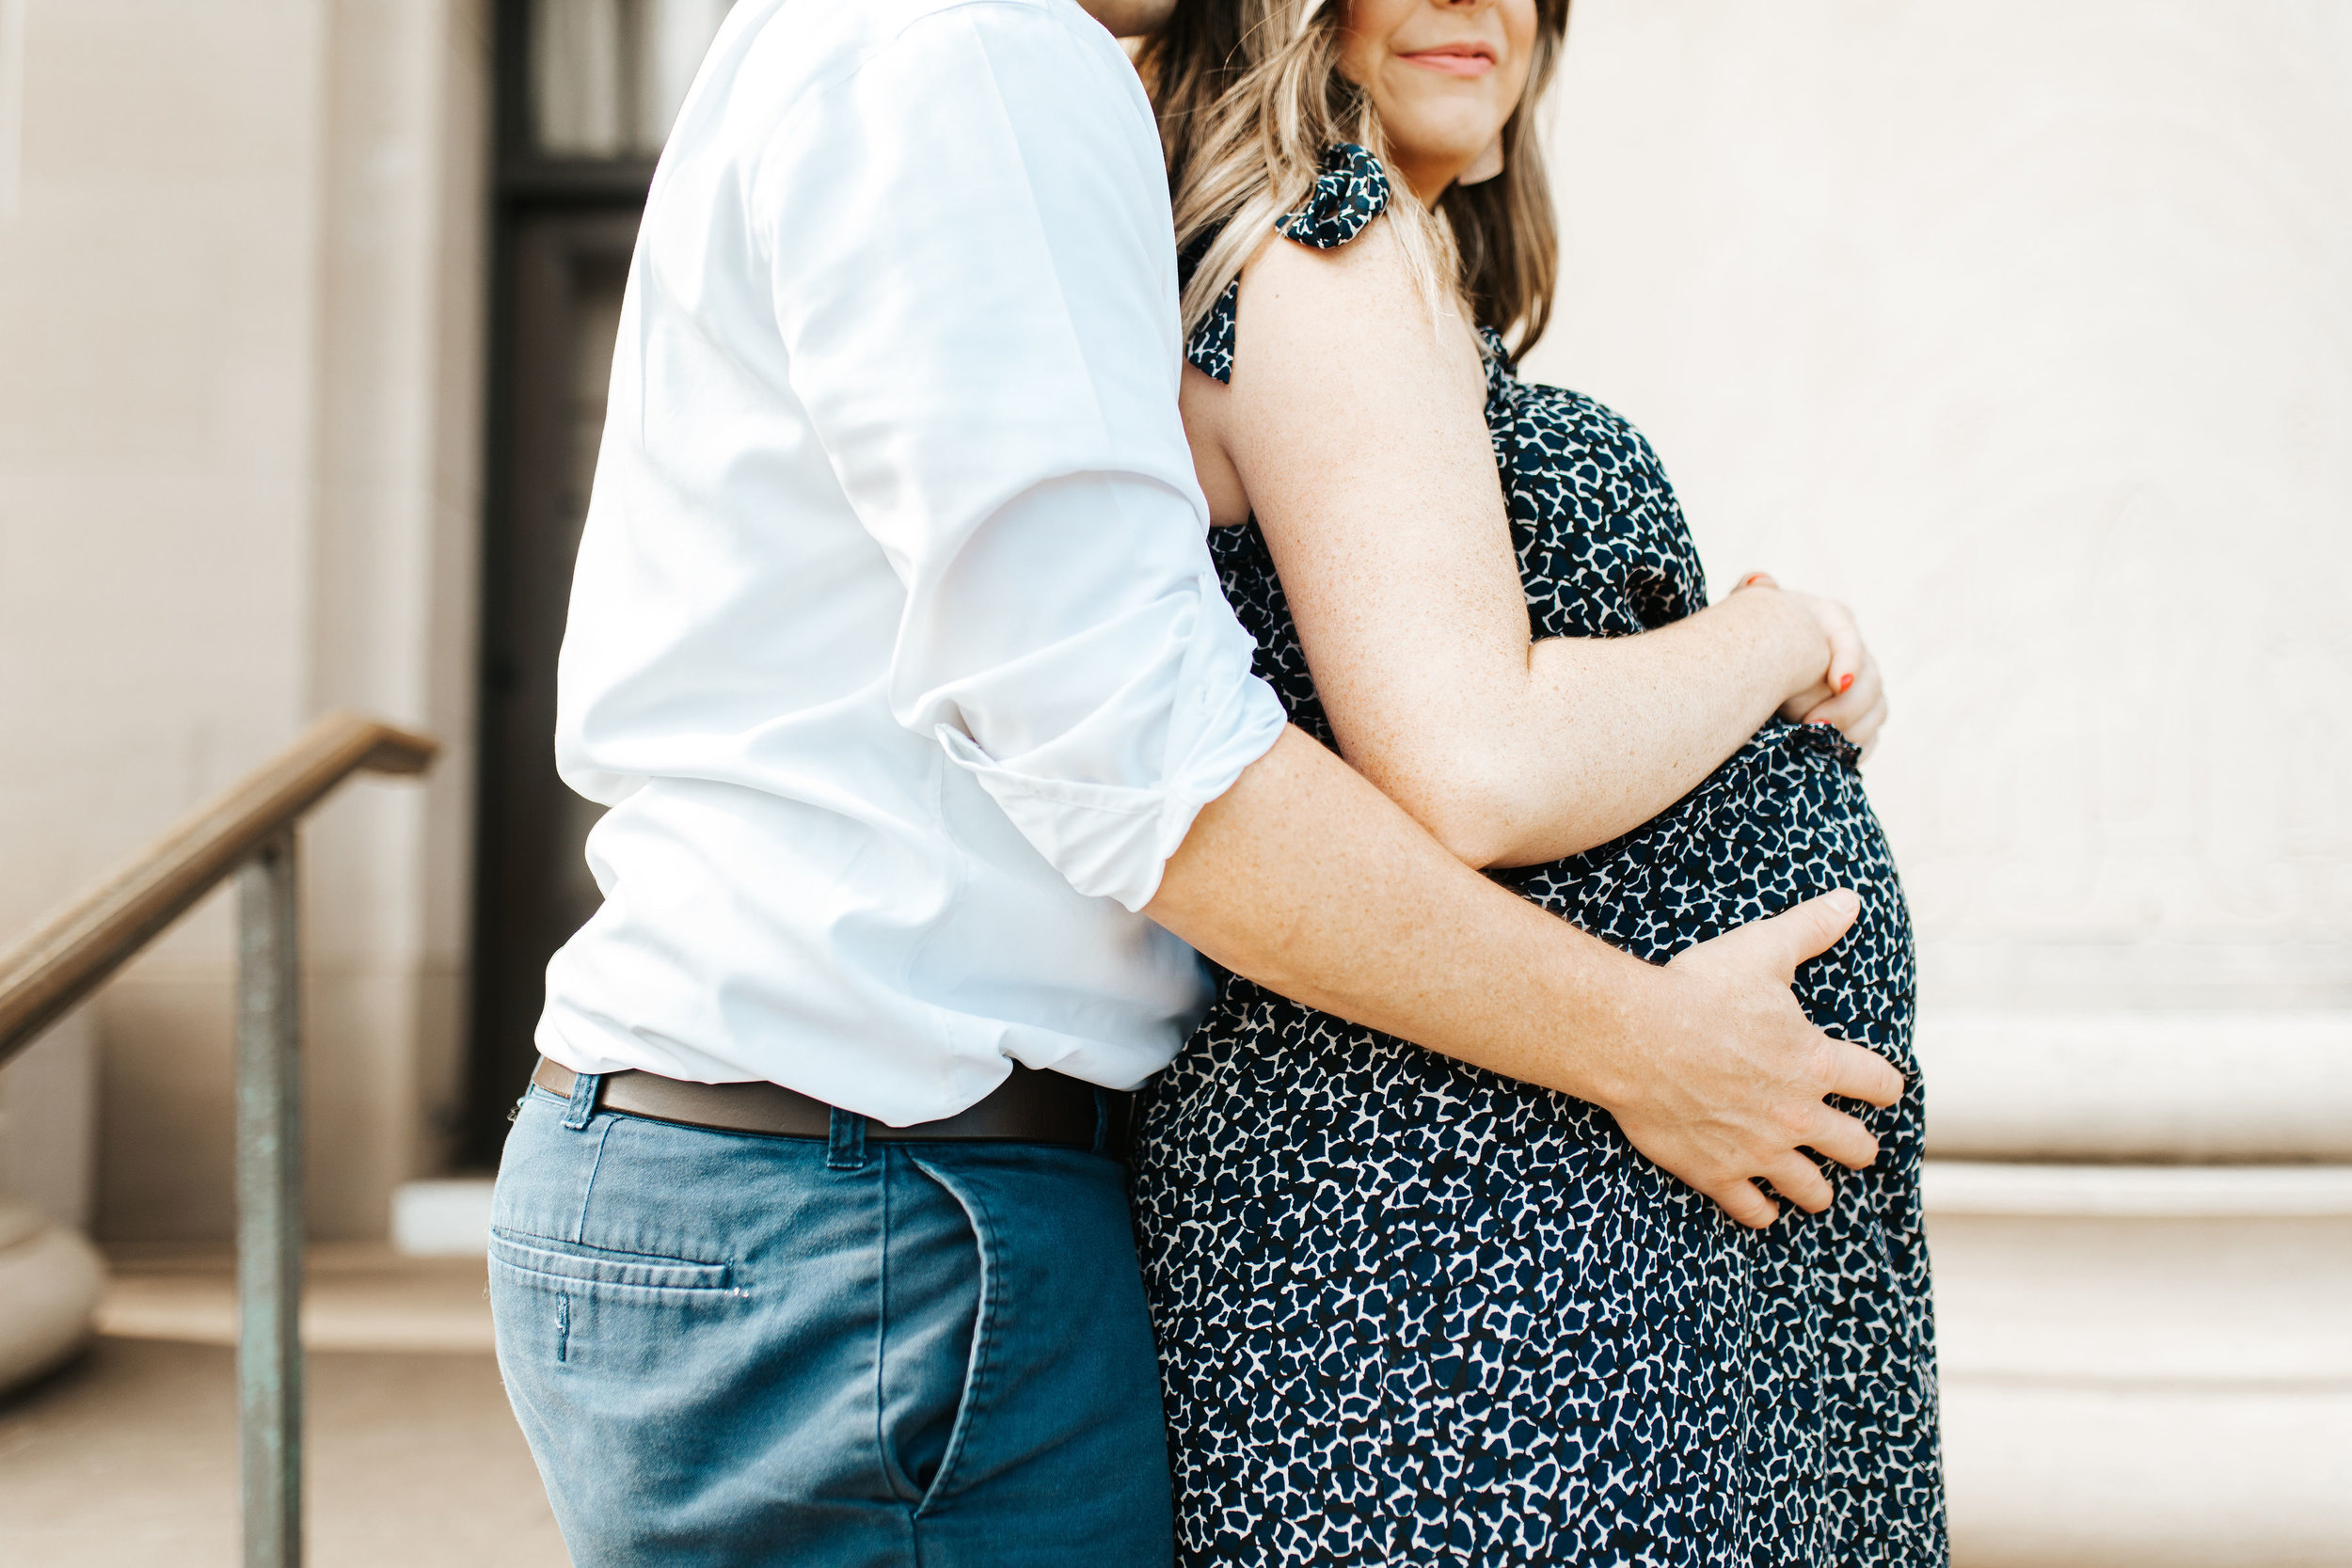 Maternity Shoot - Welcoming Baby Girl